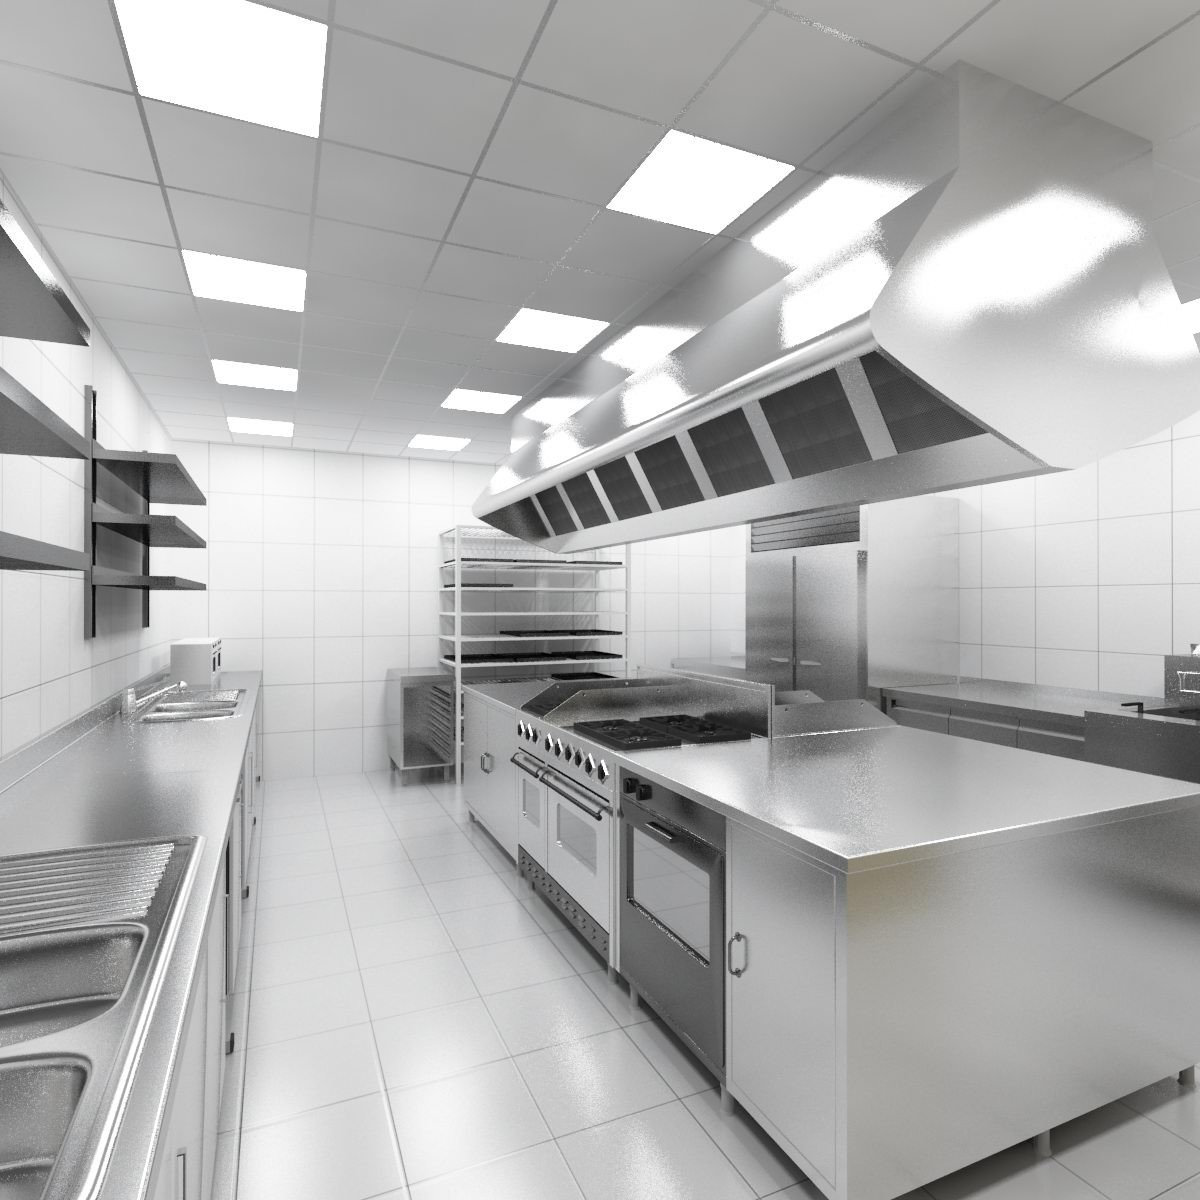 Traditional White Kitchen Design 3d Rendering: 3d Industrial Kitchen Model